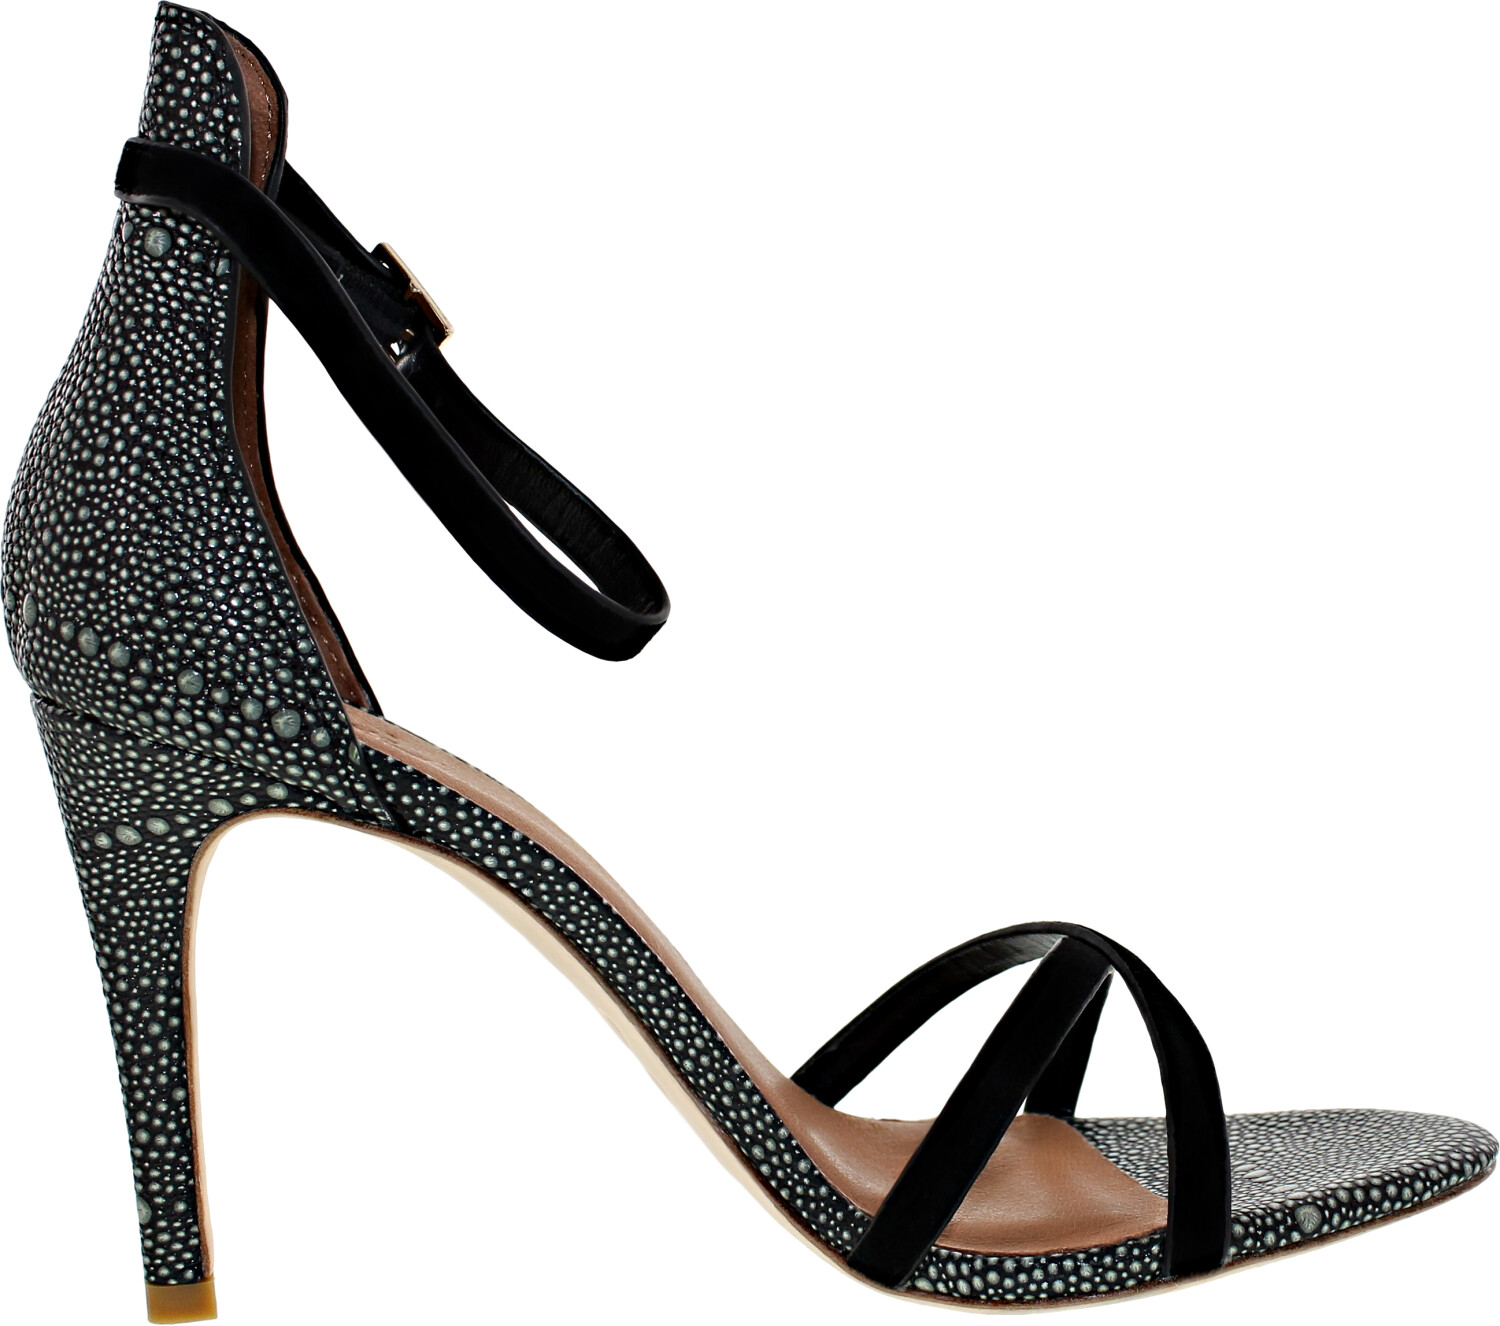 Joie Women's Jade Black Ankle-High Leather Pump - 7.5M